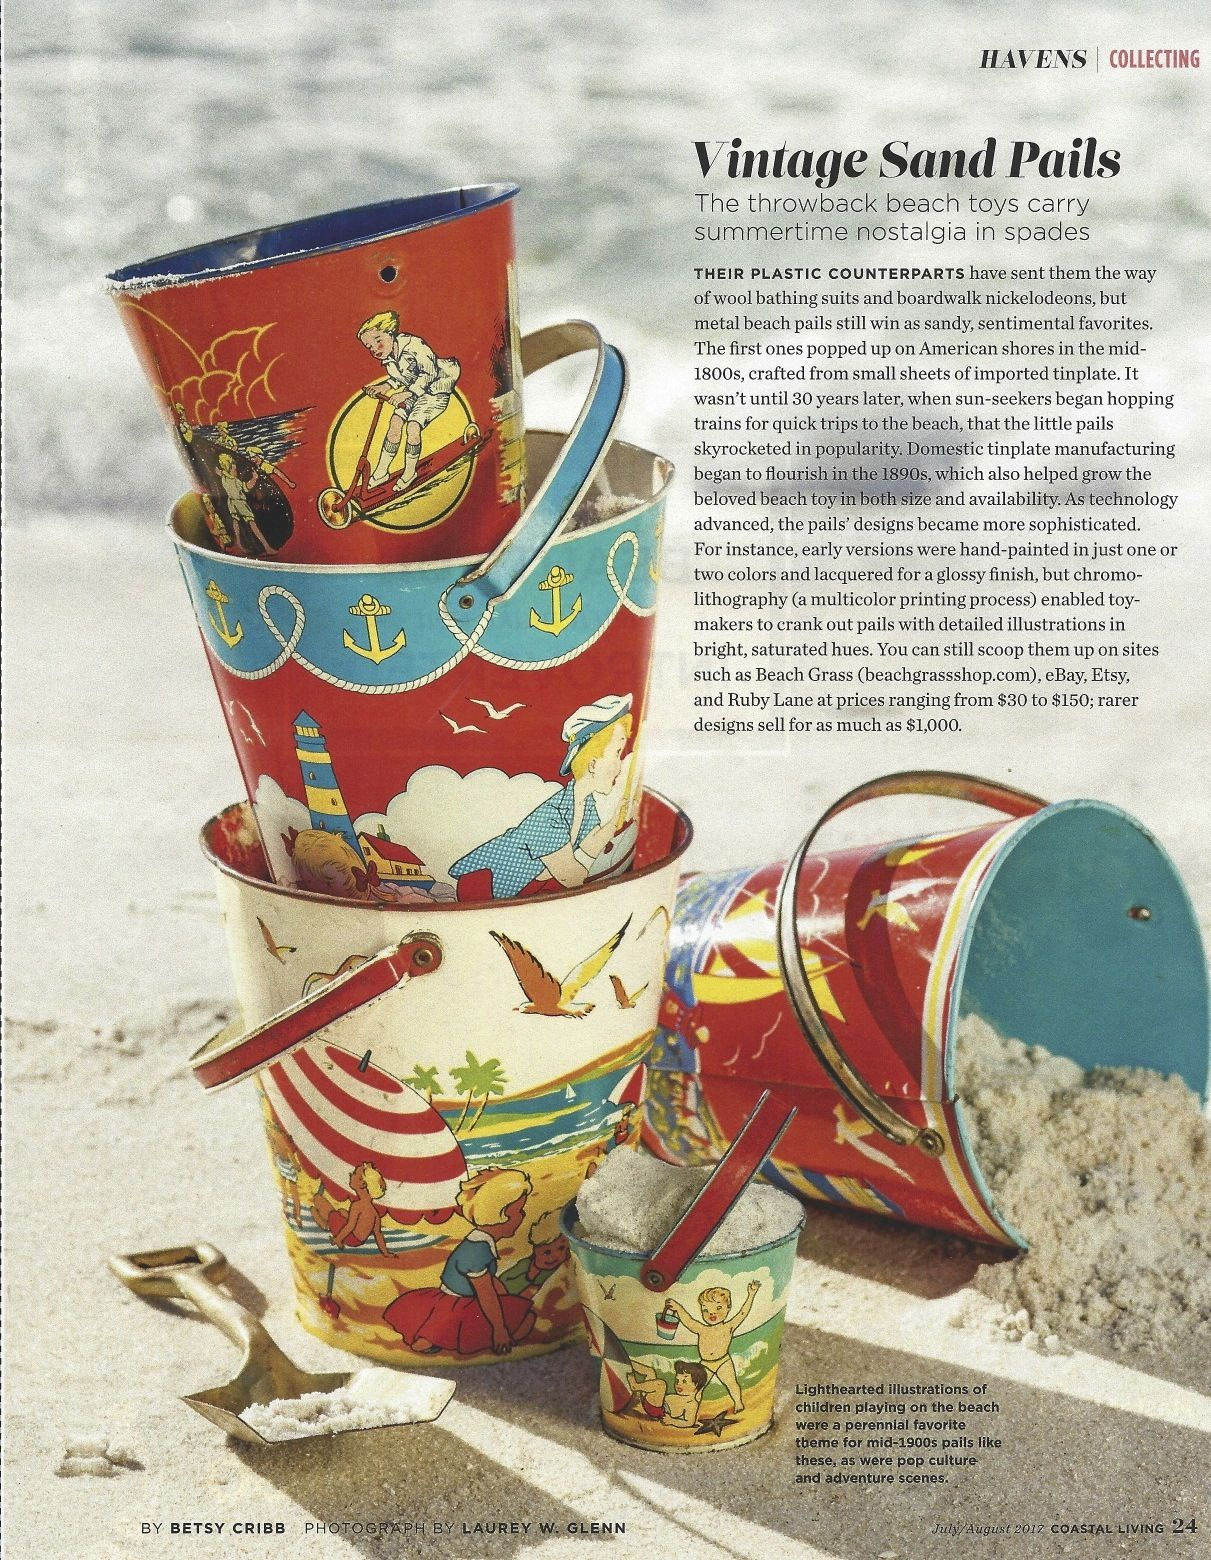 July/August 2017, Coastal Living Magazine, Havens, Vintage Pails image 2